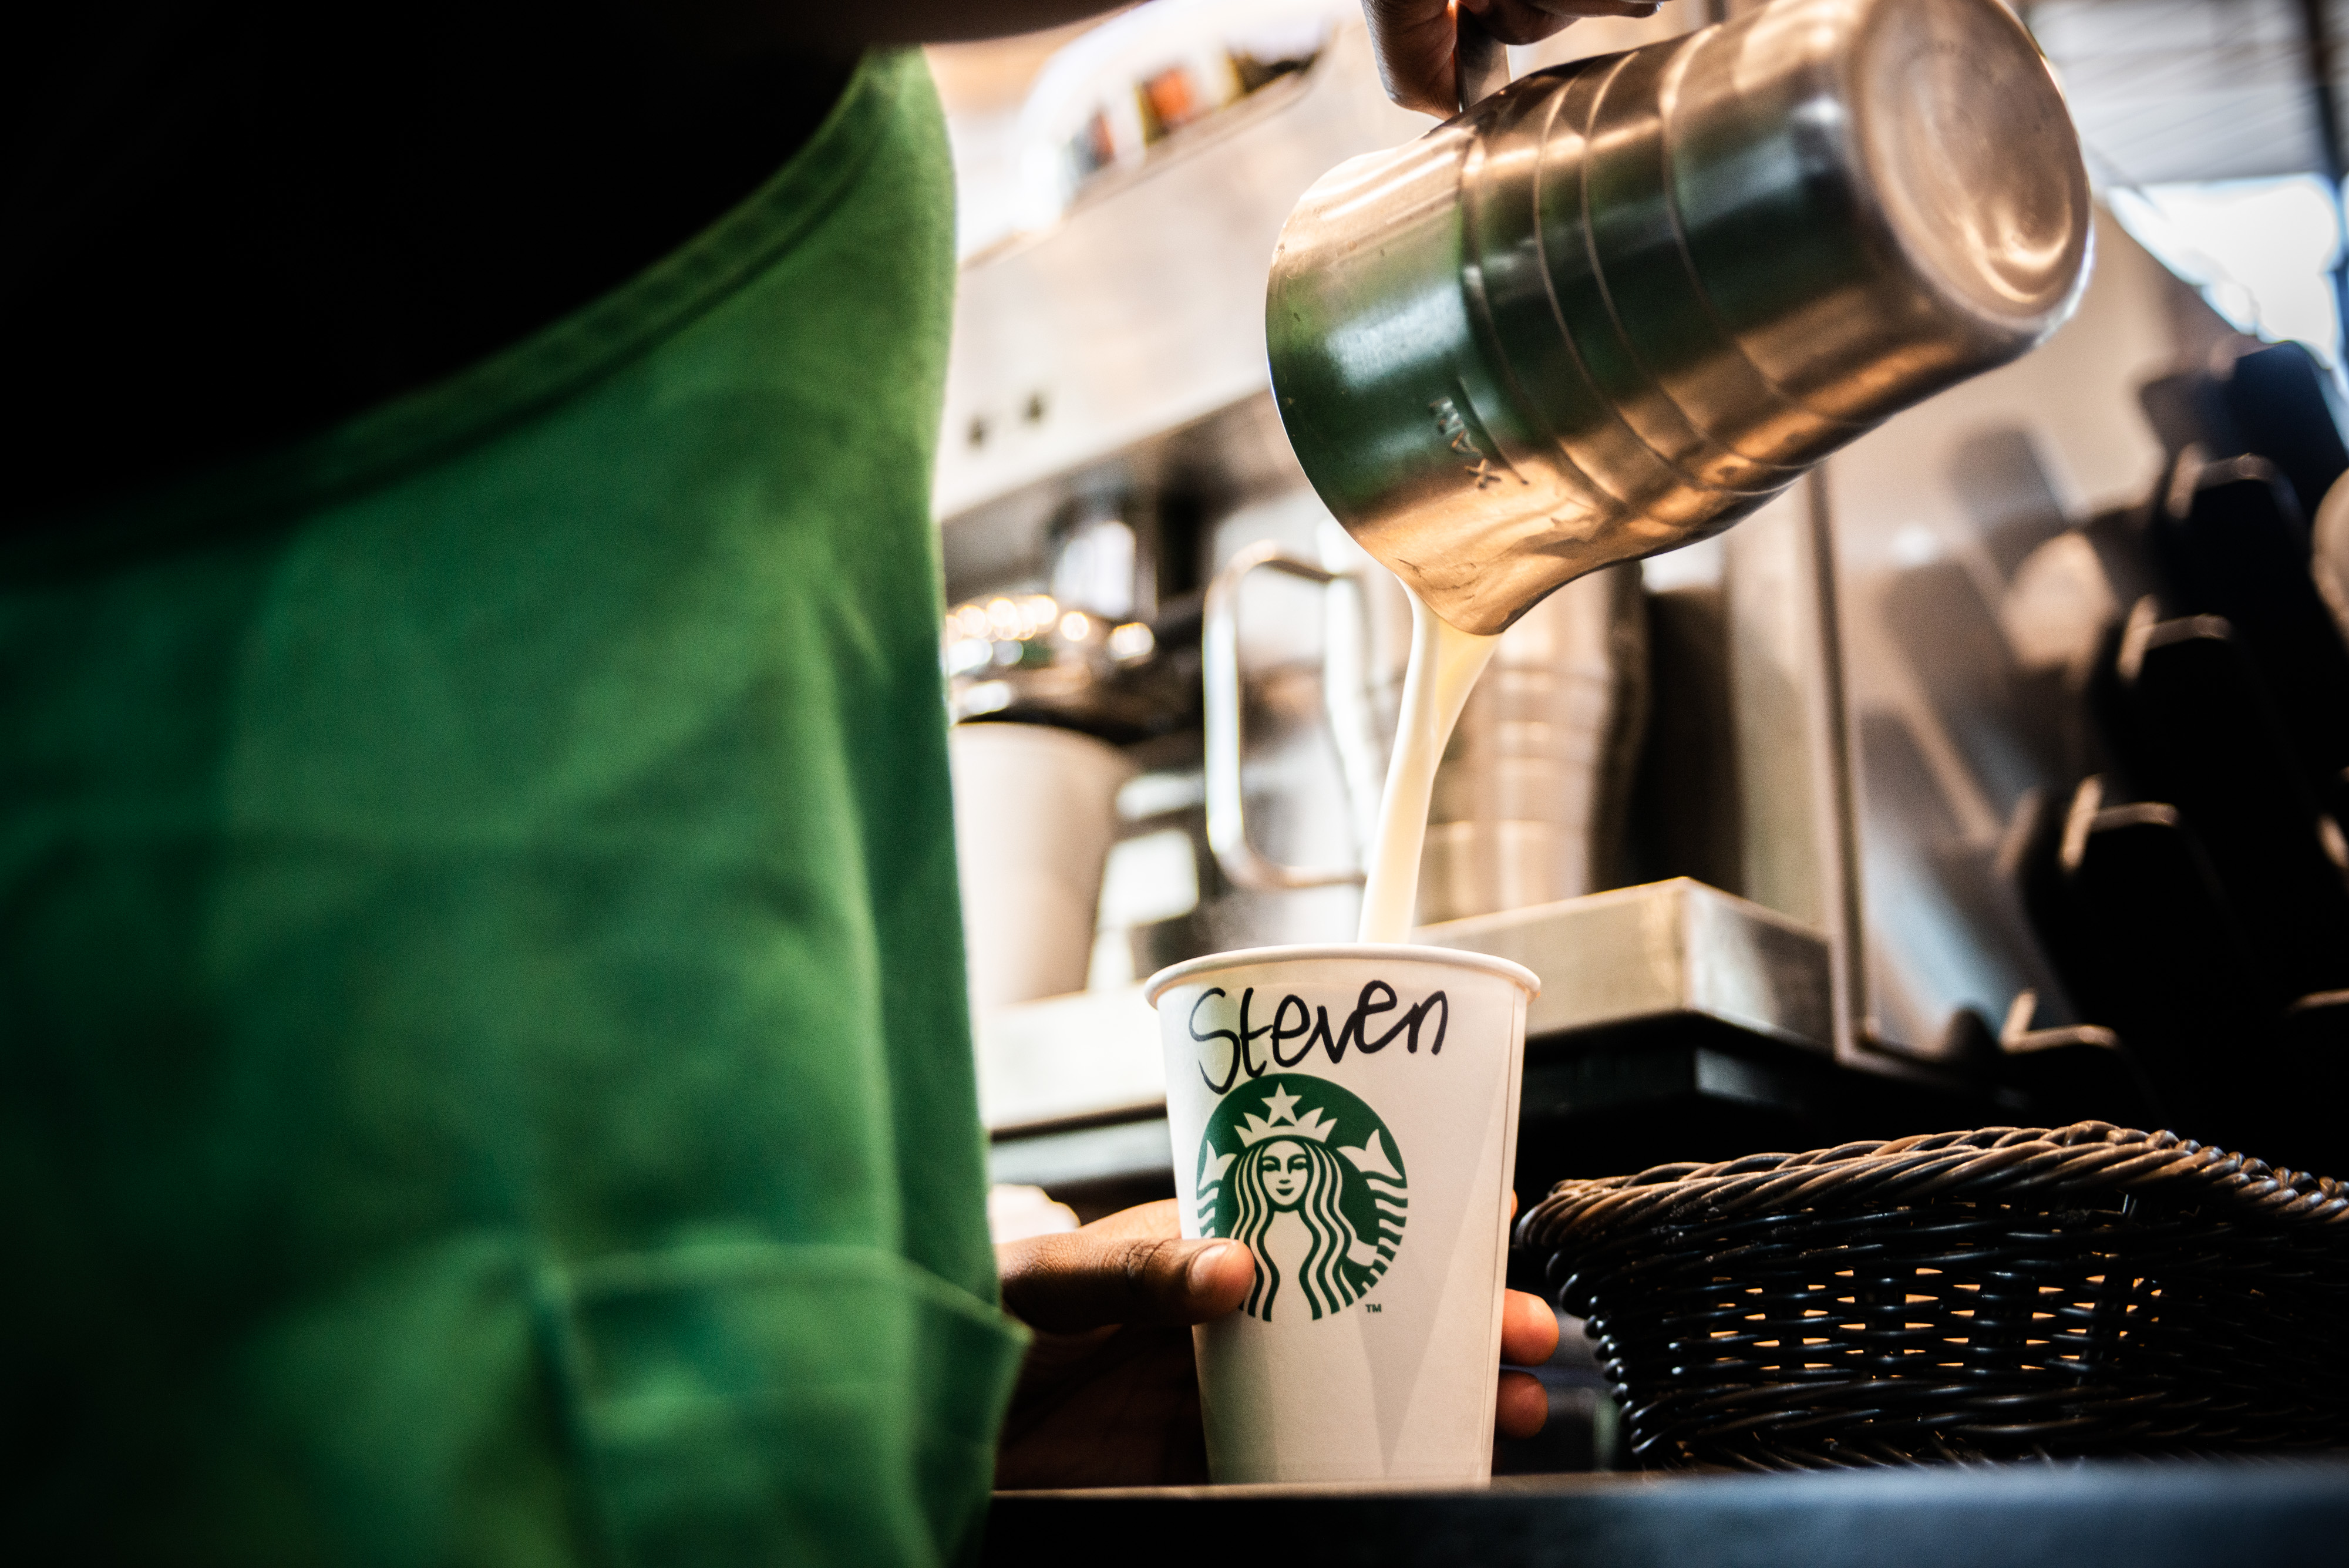 A person in a green apron pours milk from a pitcher into a white Starbucks to-go cup